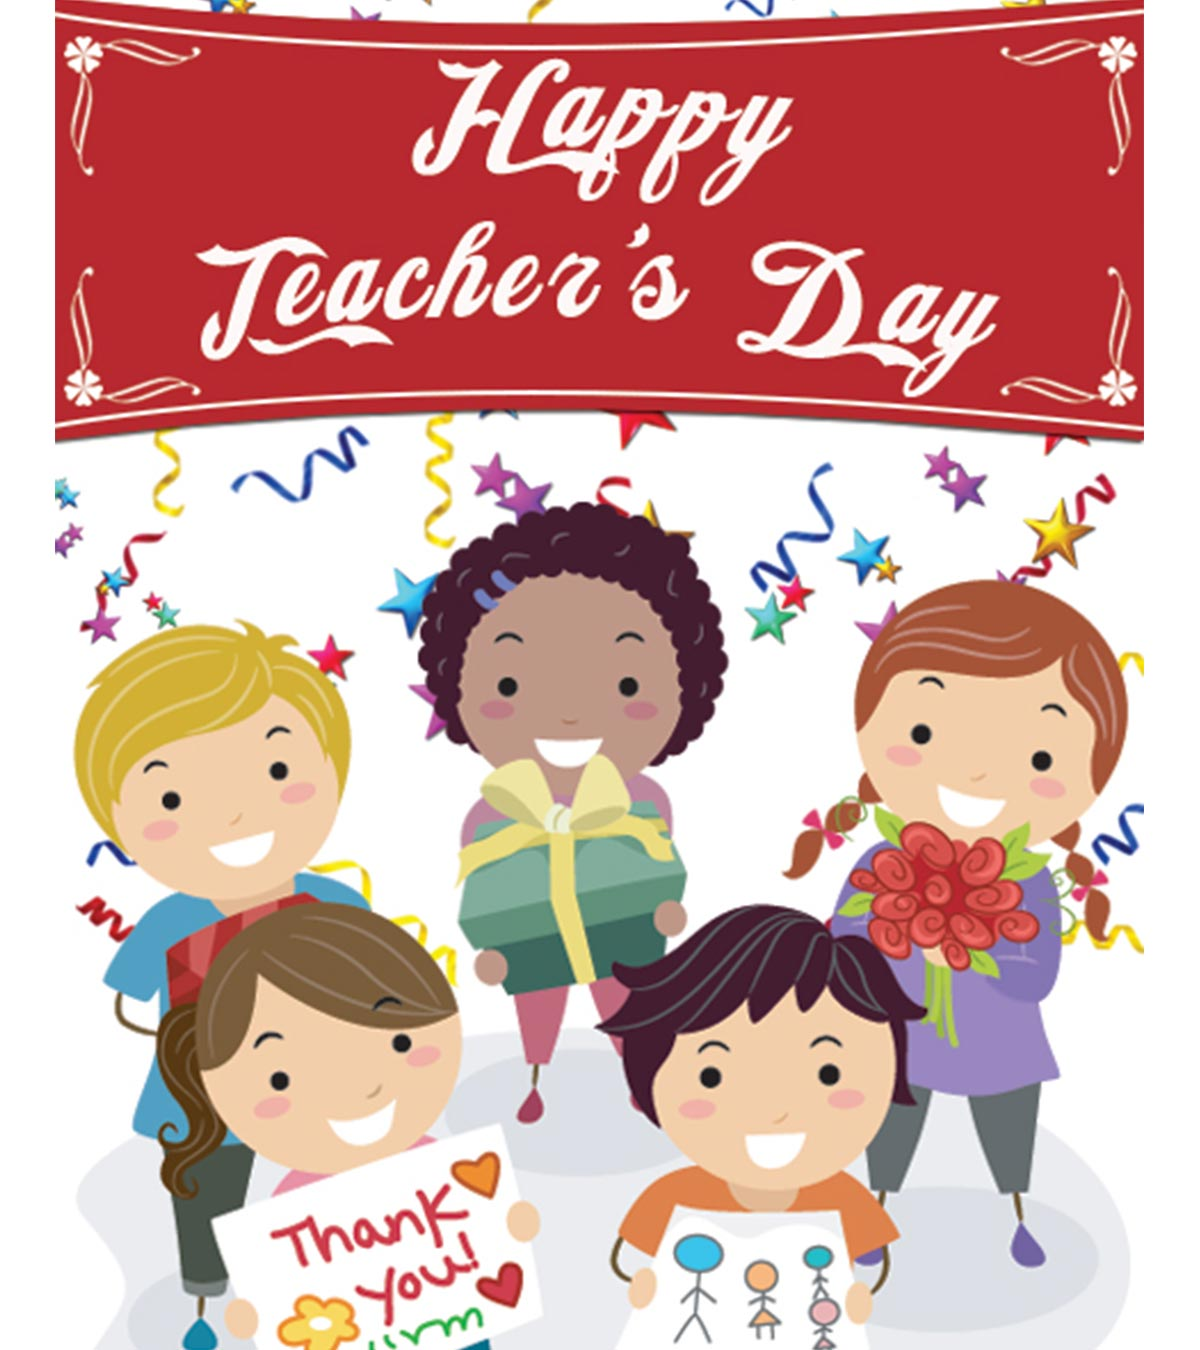 Share day clipart clipart 8 Fun Games And Activities To Celebrate Teacher\'s Day This Year clipart